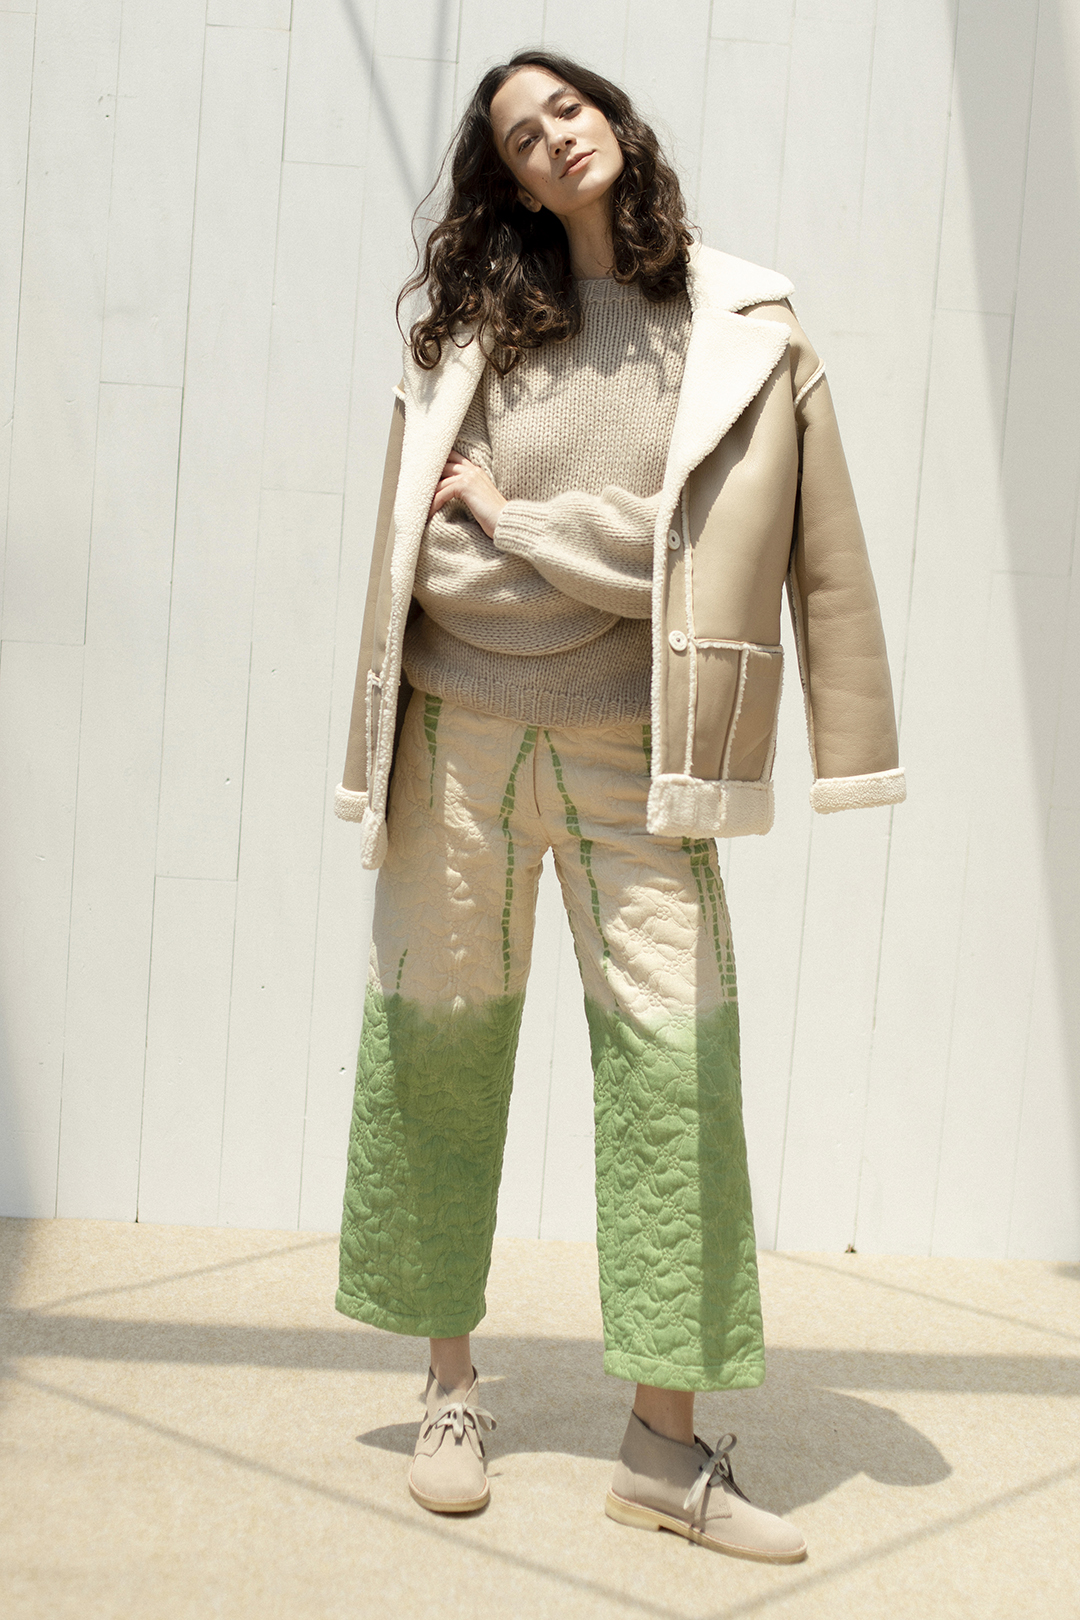 20_1 outer¥80,300  knit¥67,100  pants¥50,600  shoes¥25,300